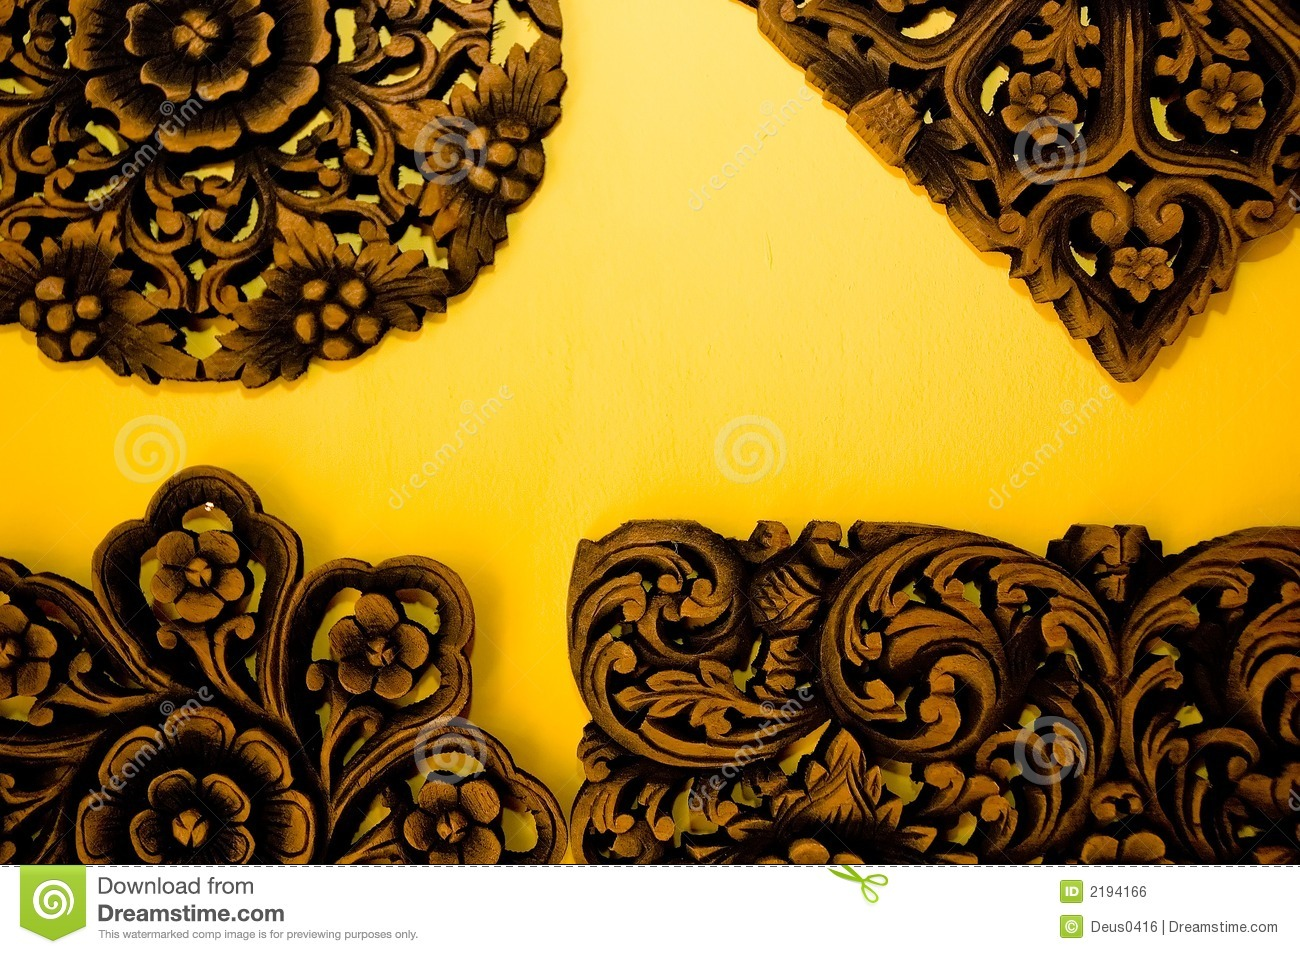 Indian Wood Carvings Royalty Free Stock Image - Image: 2194166